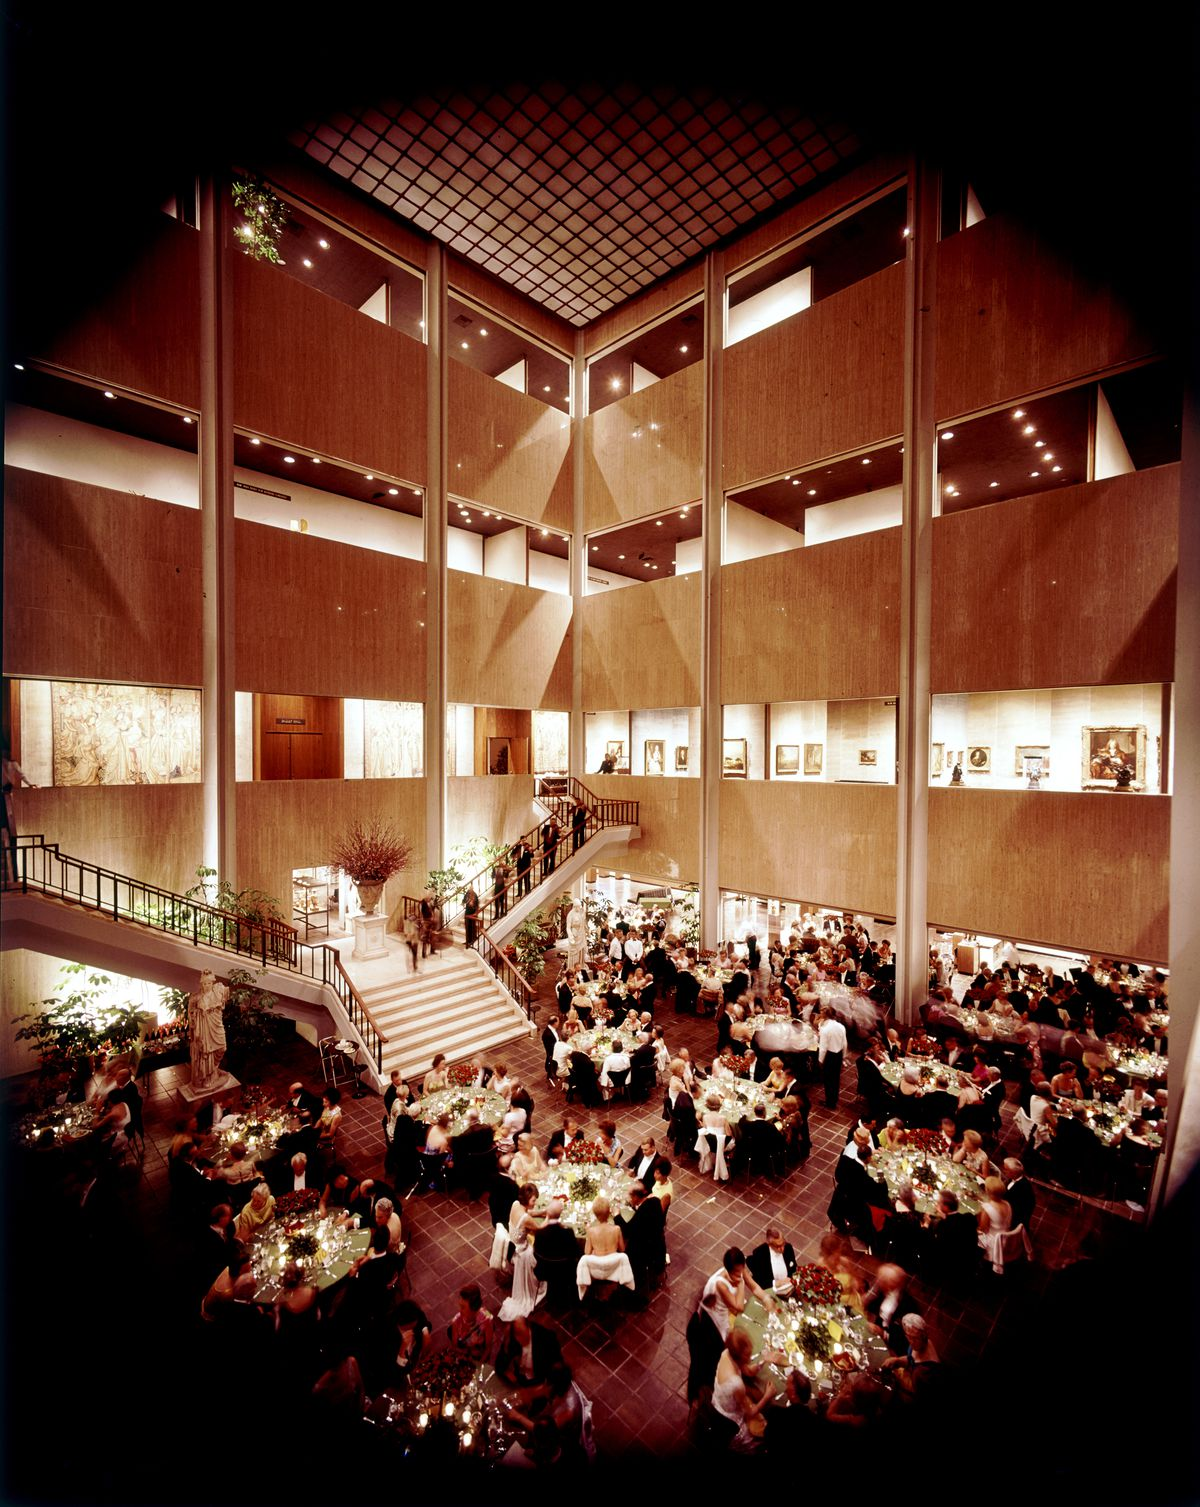 An interior shot of a banquet in a large atrium with super tall ceilings.